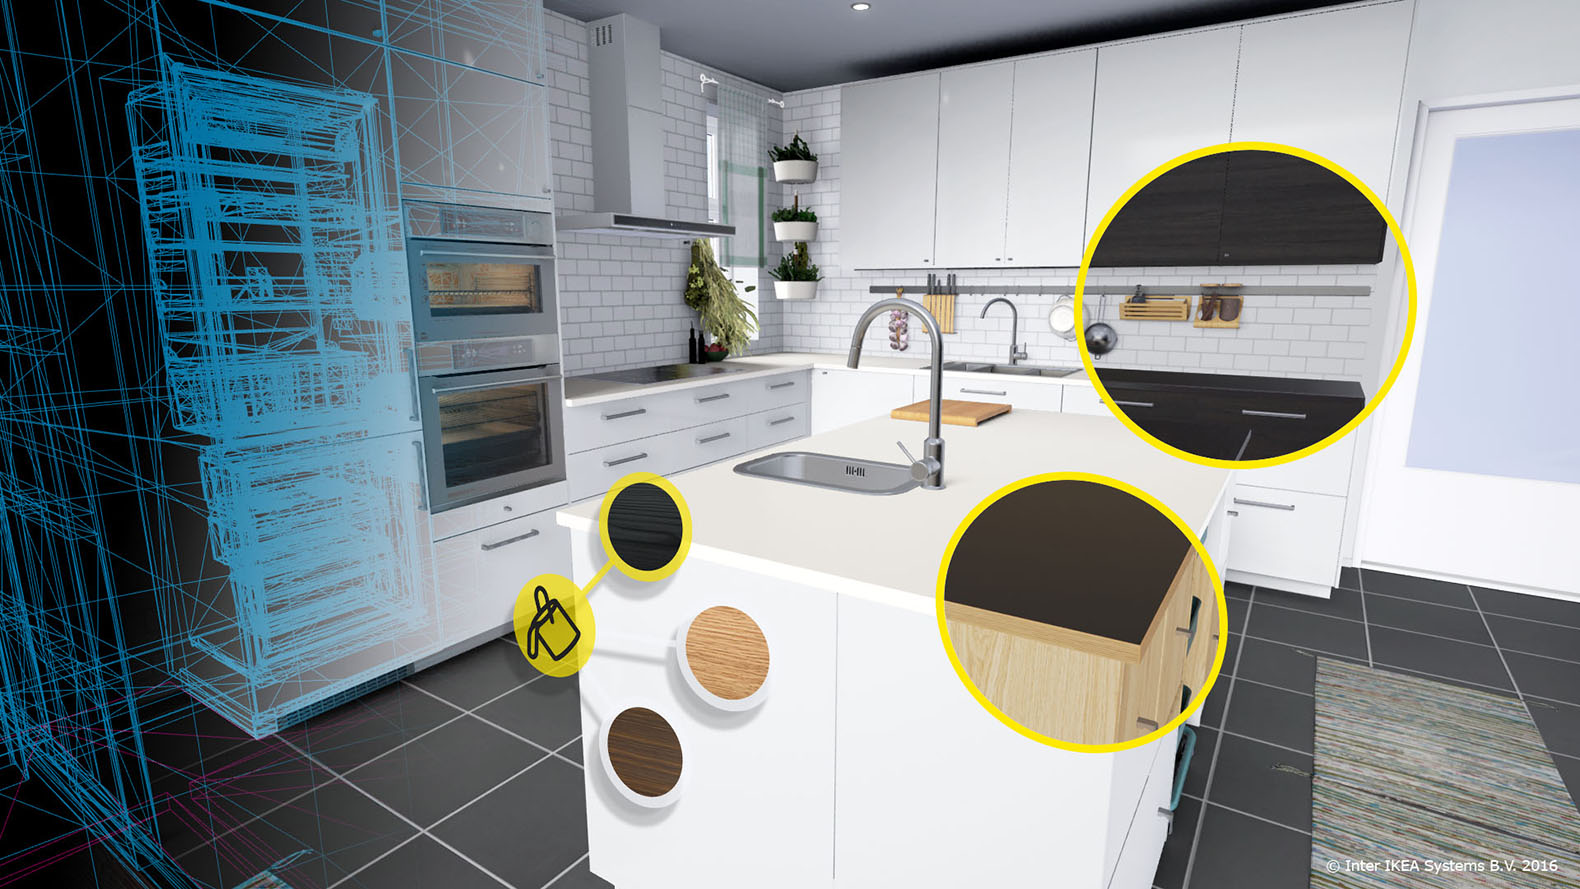 IKEA's New App Lets You Try Out Furniture In Virtual Reality